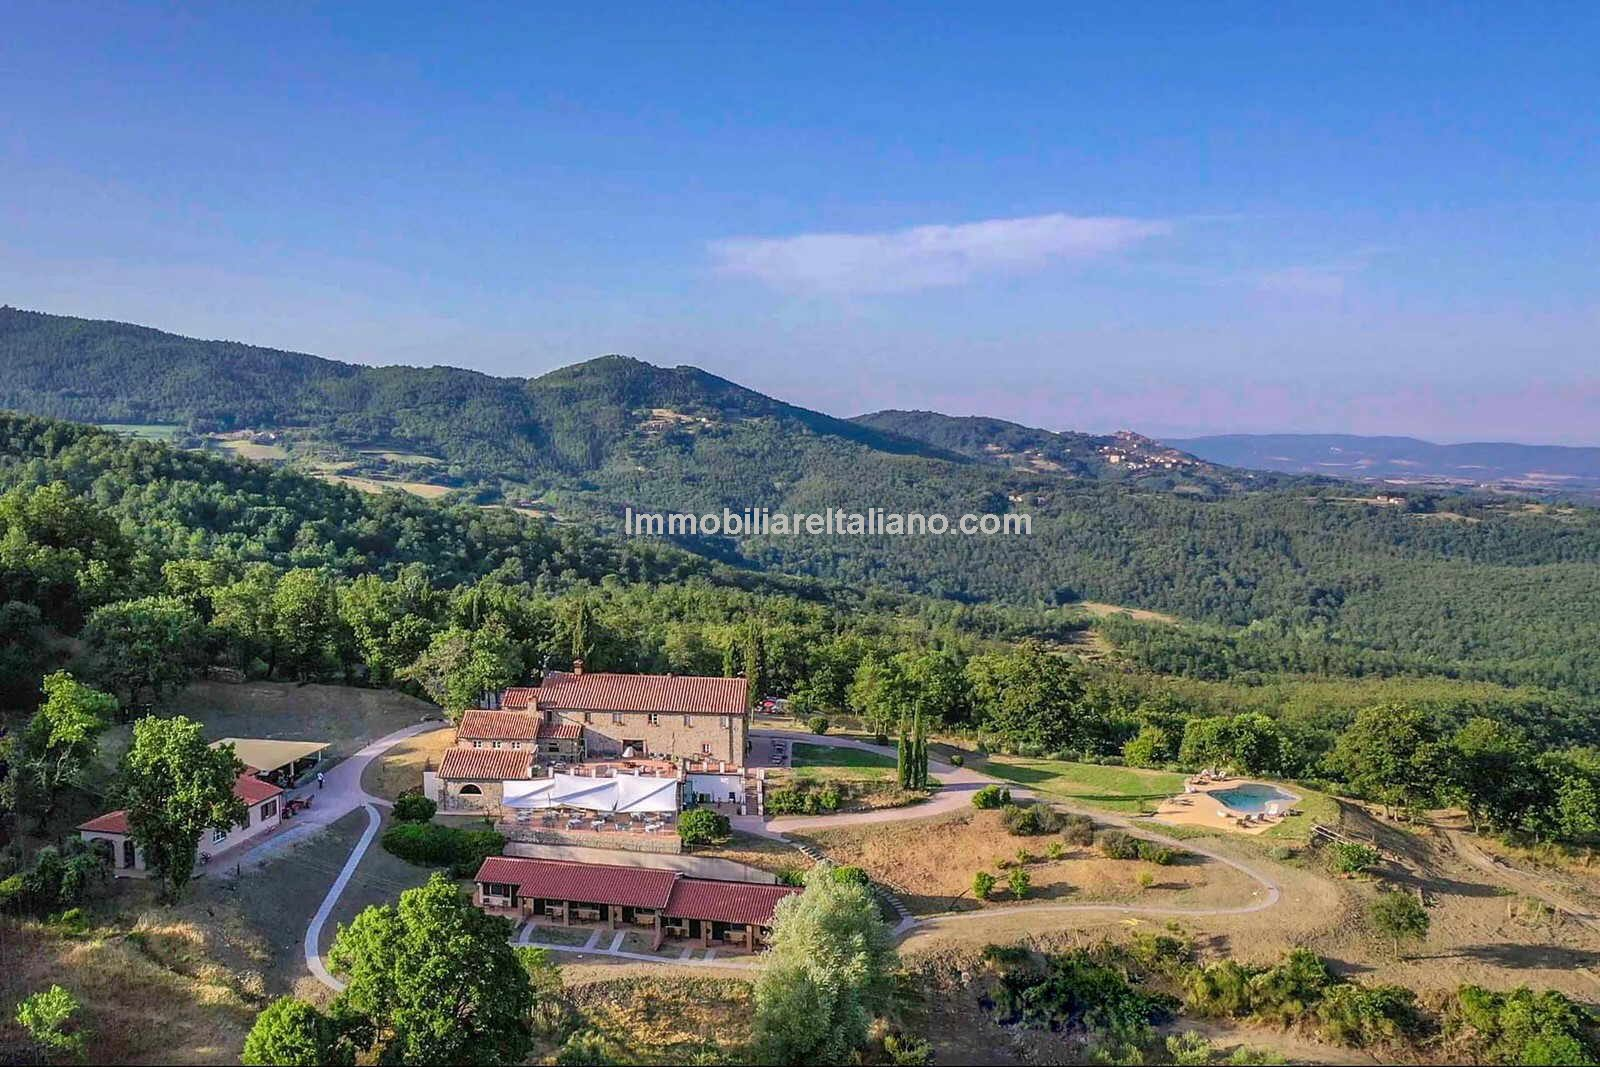 Agriturismo property in Tuscany - aerial view